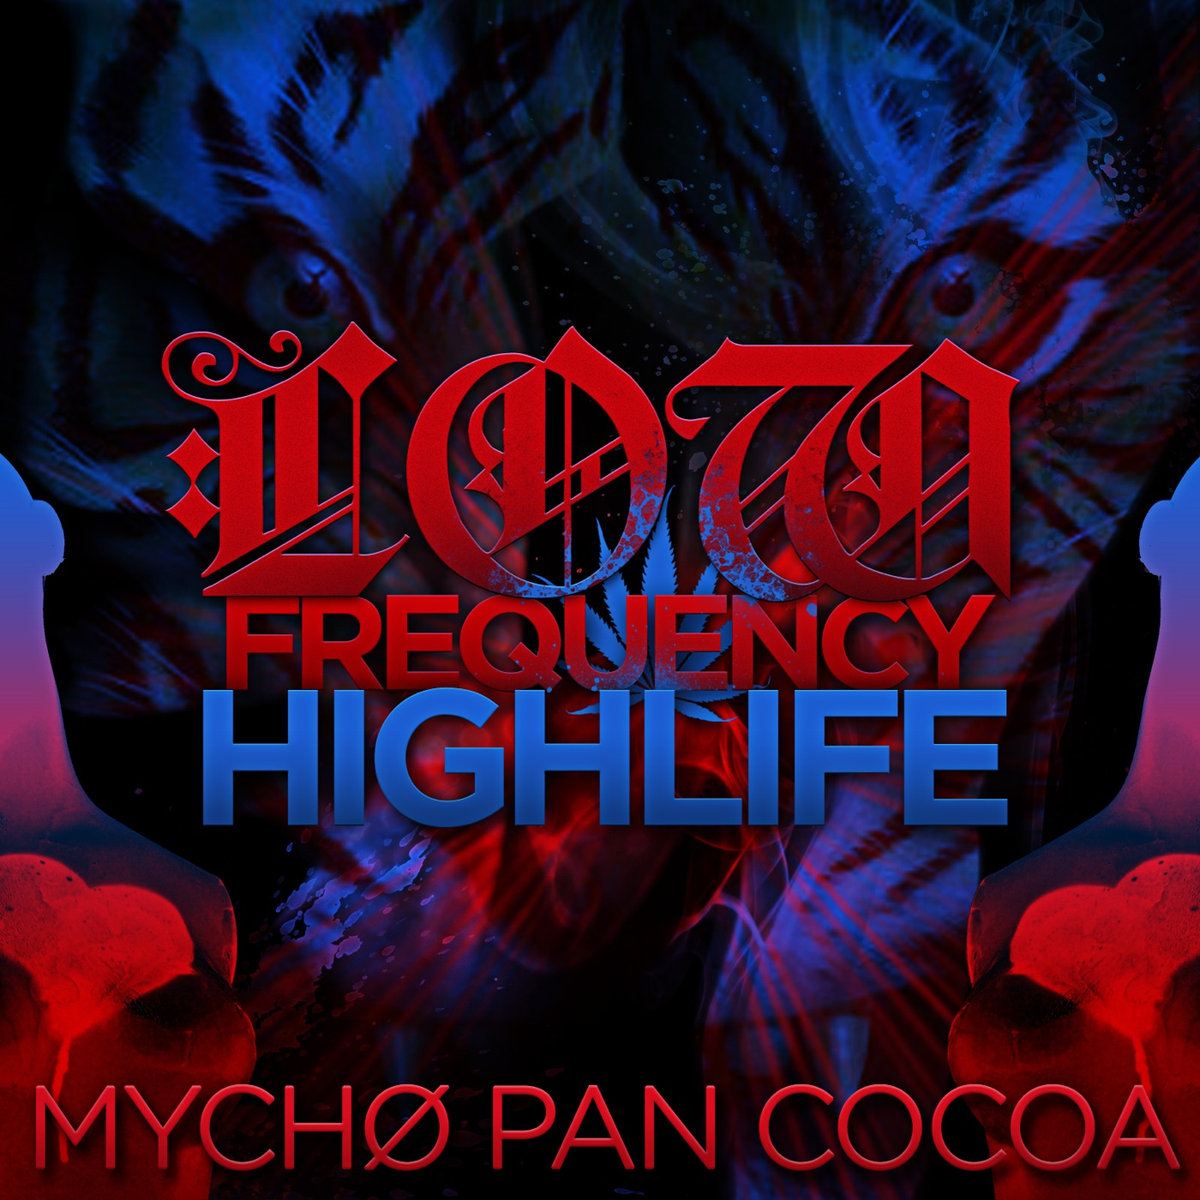 Mycho Pan Cocoa - West Coast Nitrous Circus @ 'Low Frequency High Life' album (electronic, dubstep)